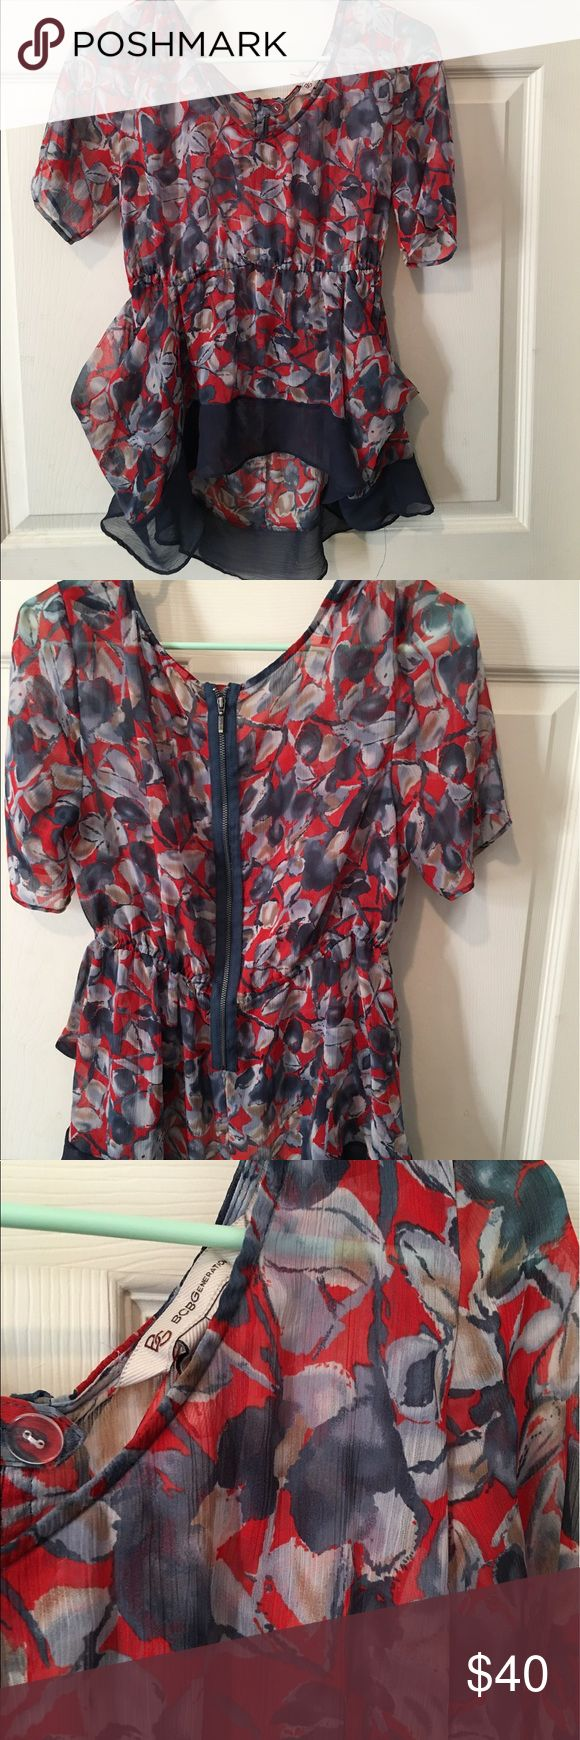 Beautiful BCBG Generation top!! 💐 Always been one of my faves!!😍 Just time to pass along! Sheer, but I always wore a nude bra under it, beautifully detailed top! Two front pockets & zip up back! This always looked perfect with just jeans! ❤️ BCBGeneration Tops Blouses